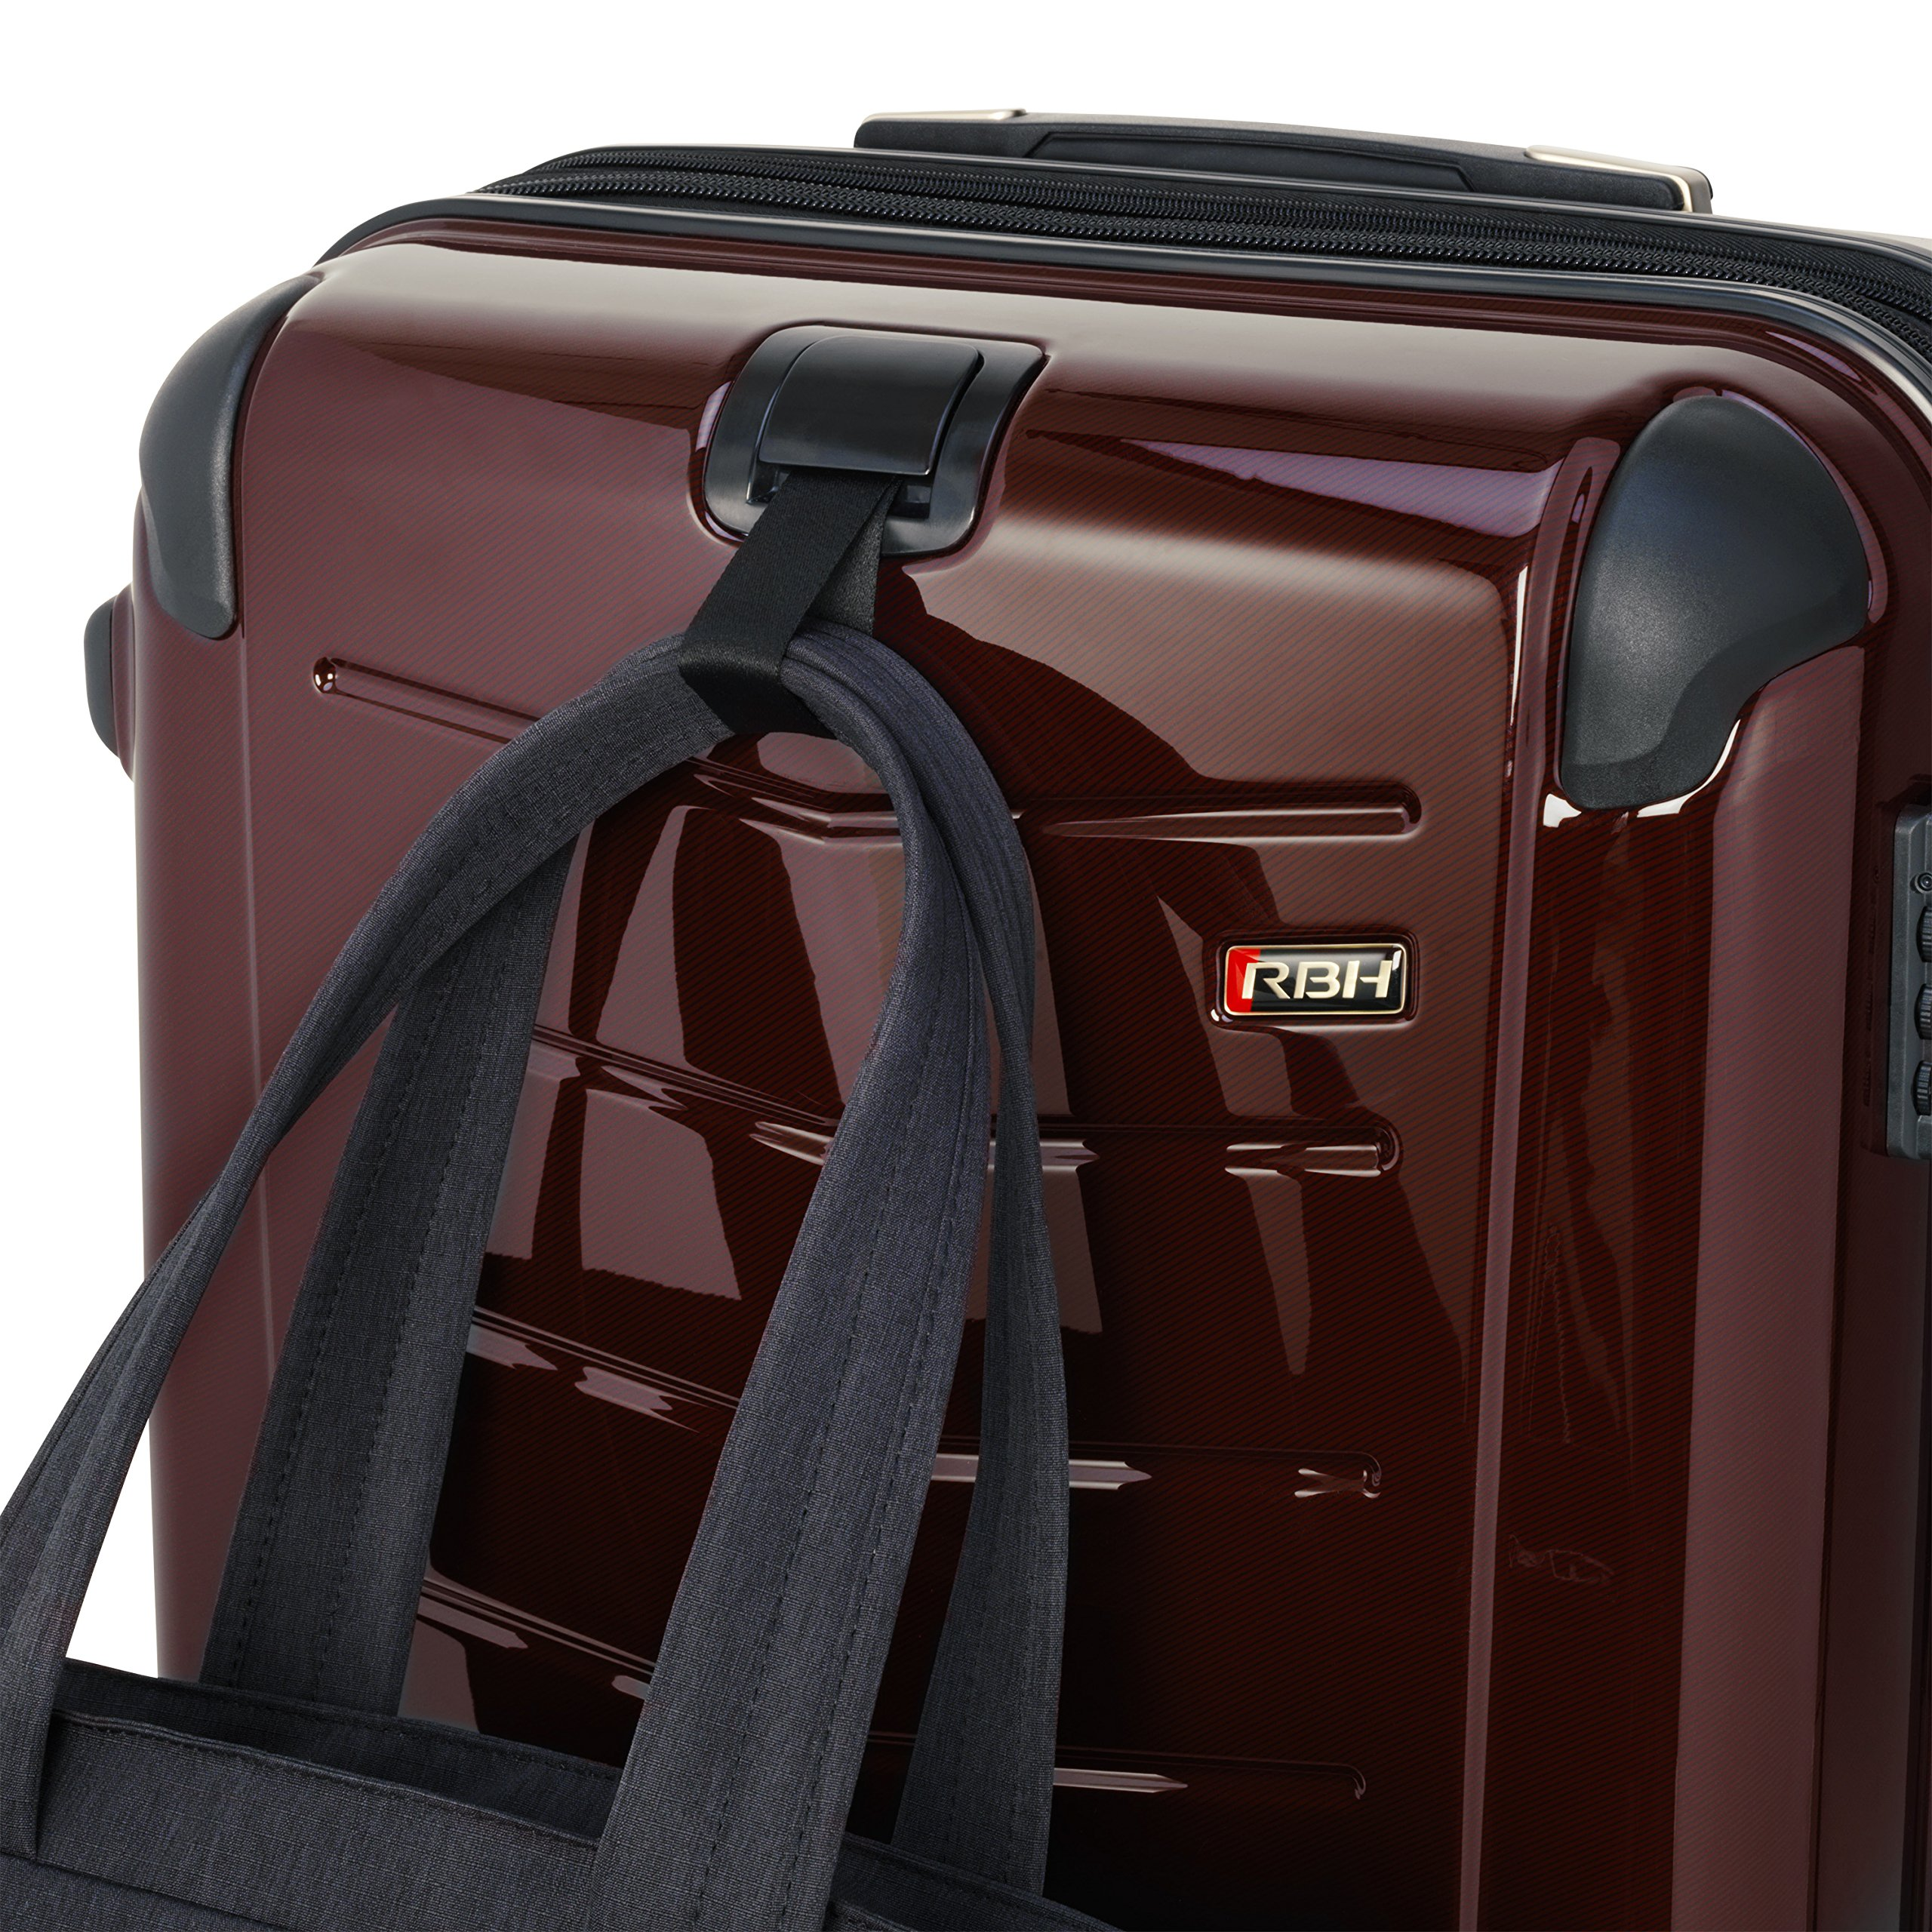 Ricardo Beverly Hills Luggage Rodeo Drive 29-Inch 4-Wheel Expandable Upright, Black Cherry, One Size by Ricardo Beverly Hills (Image #9)